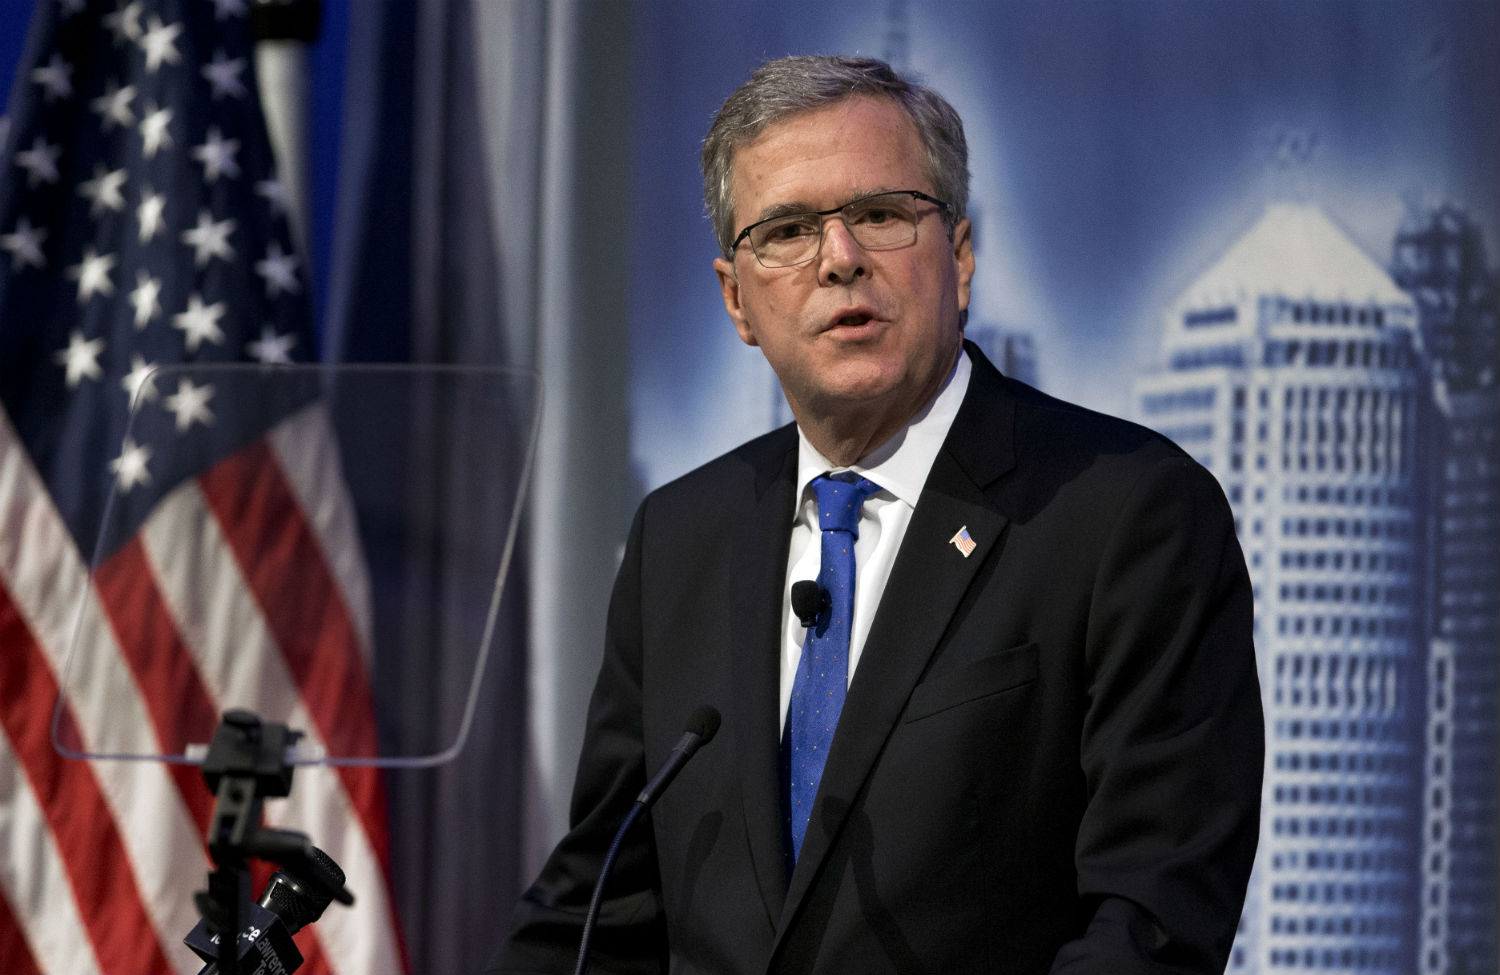 Jeb-Bush-speaks-at-Economic-Club-in-Detroit